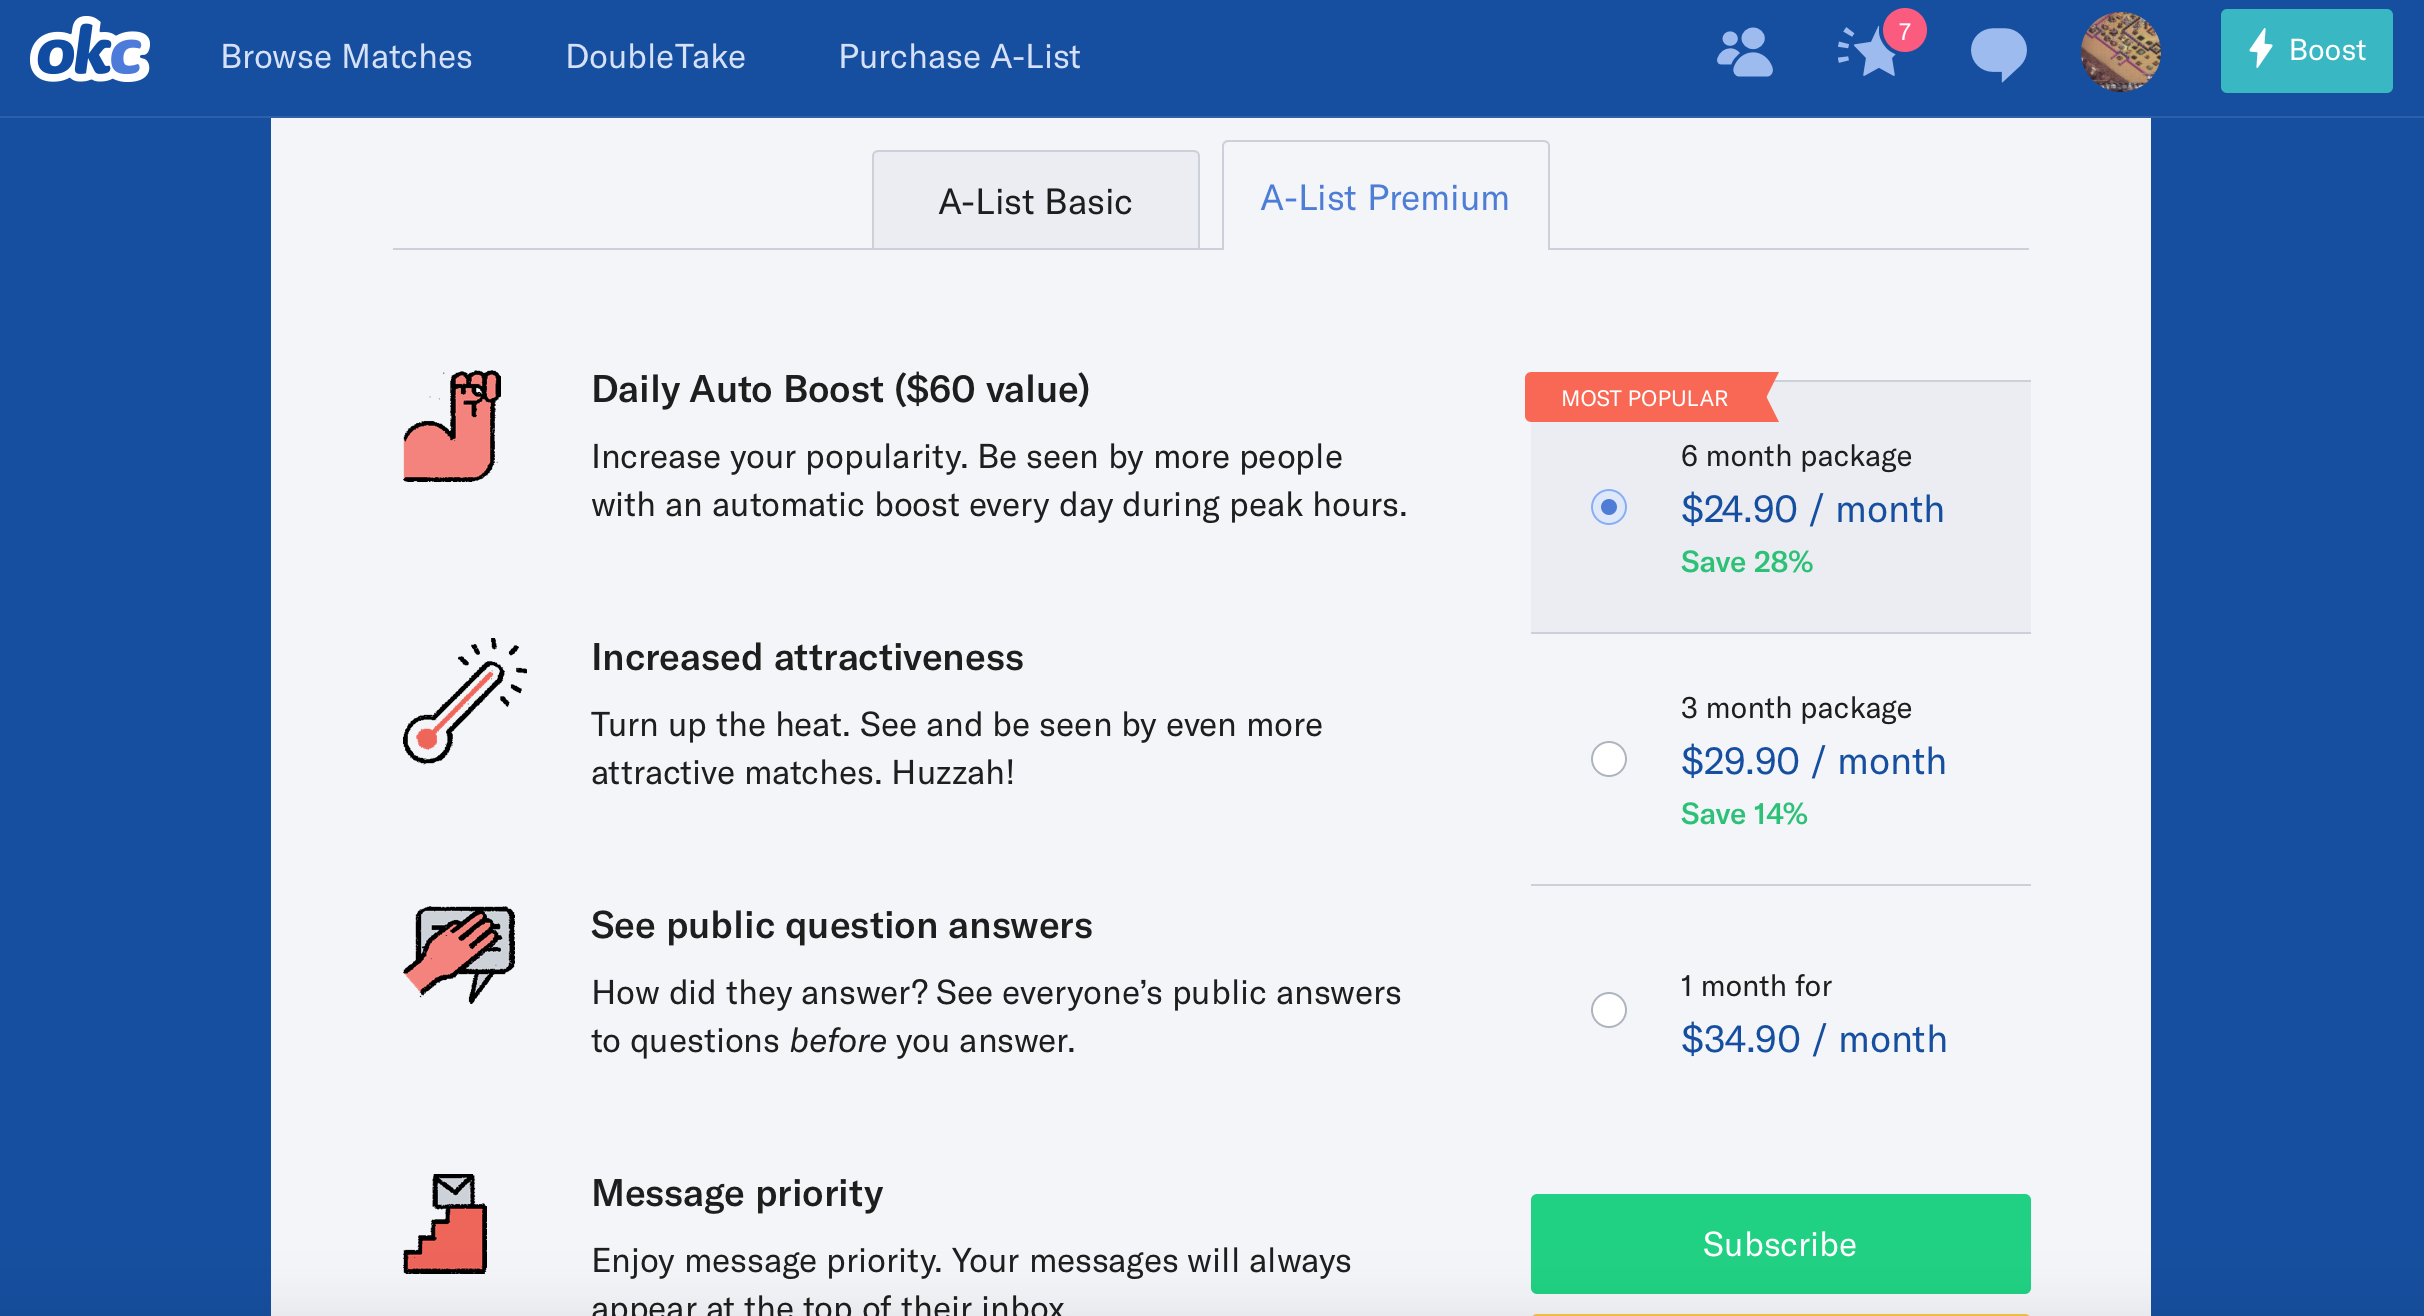 Okcupid a list price